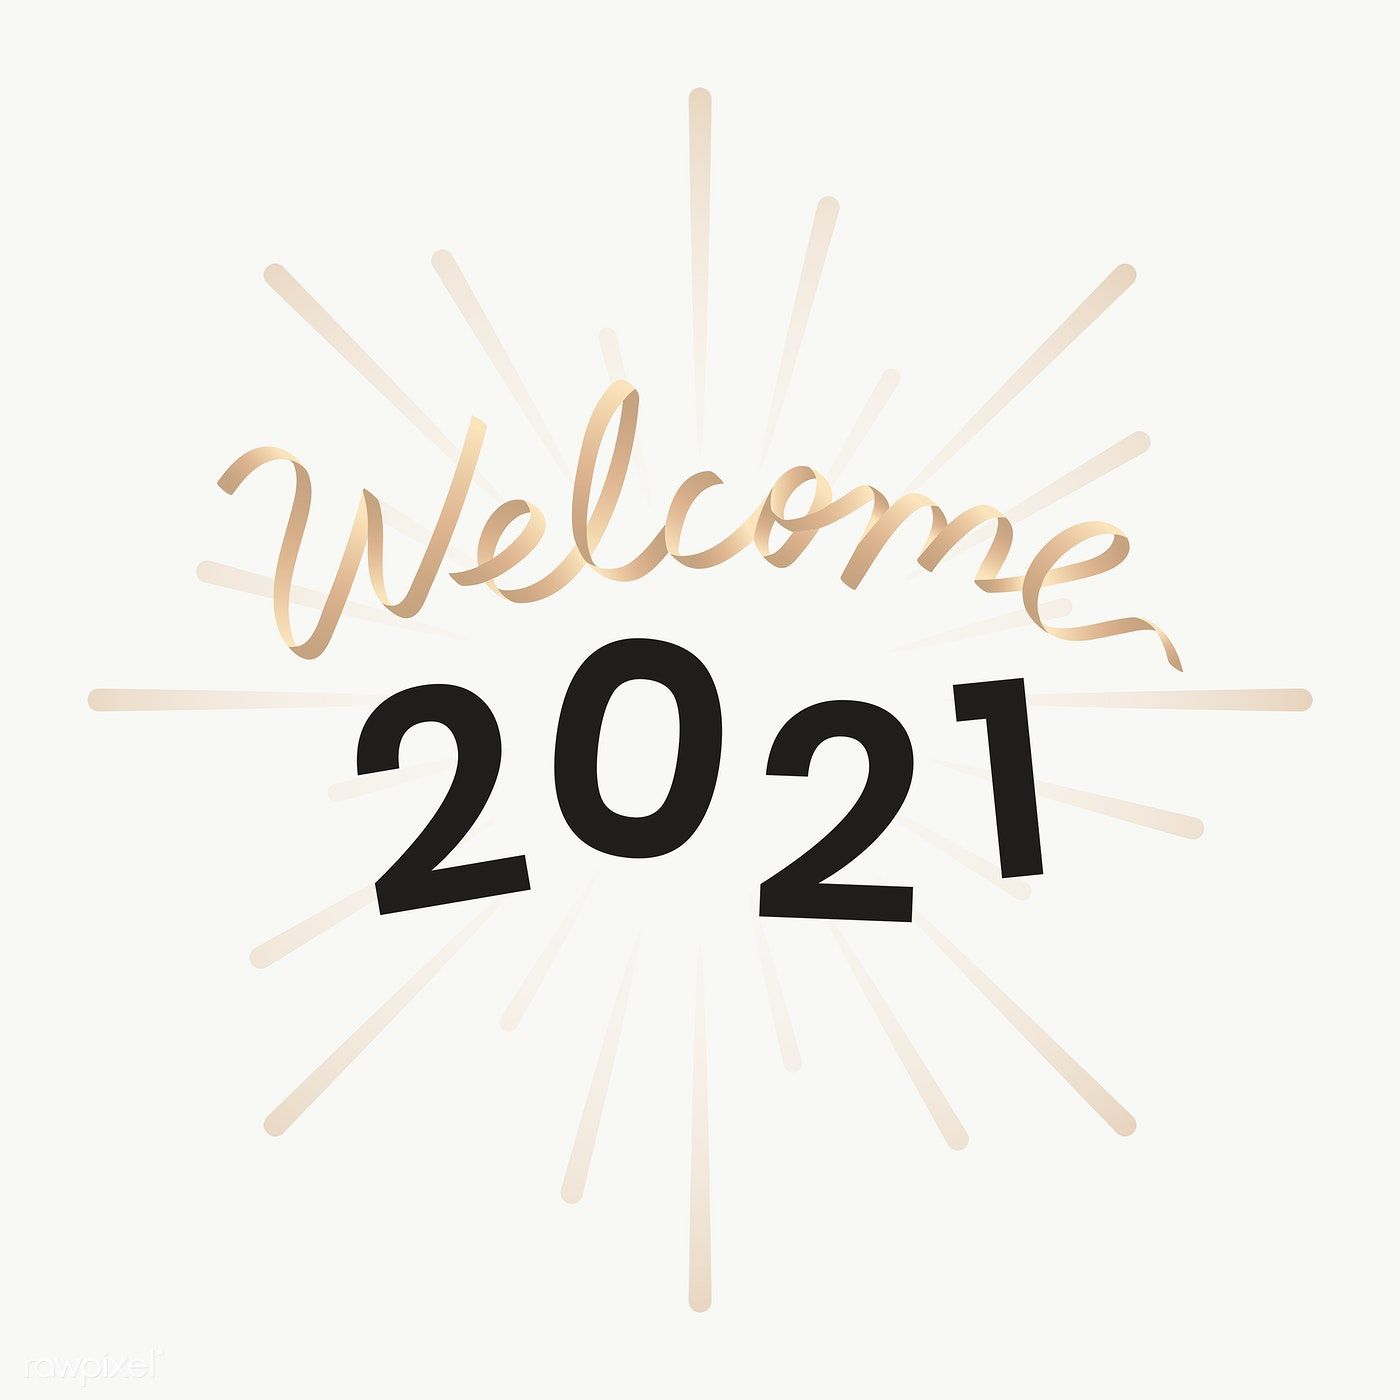 Welcome 2021 Whatsapp DP